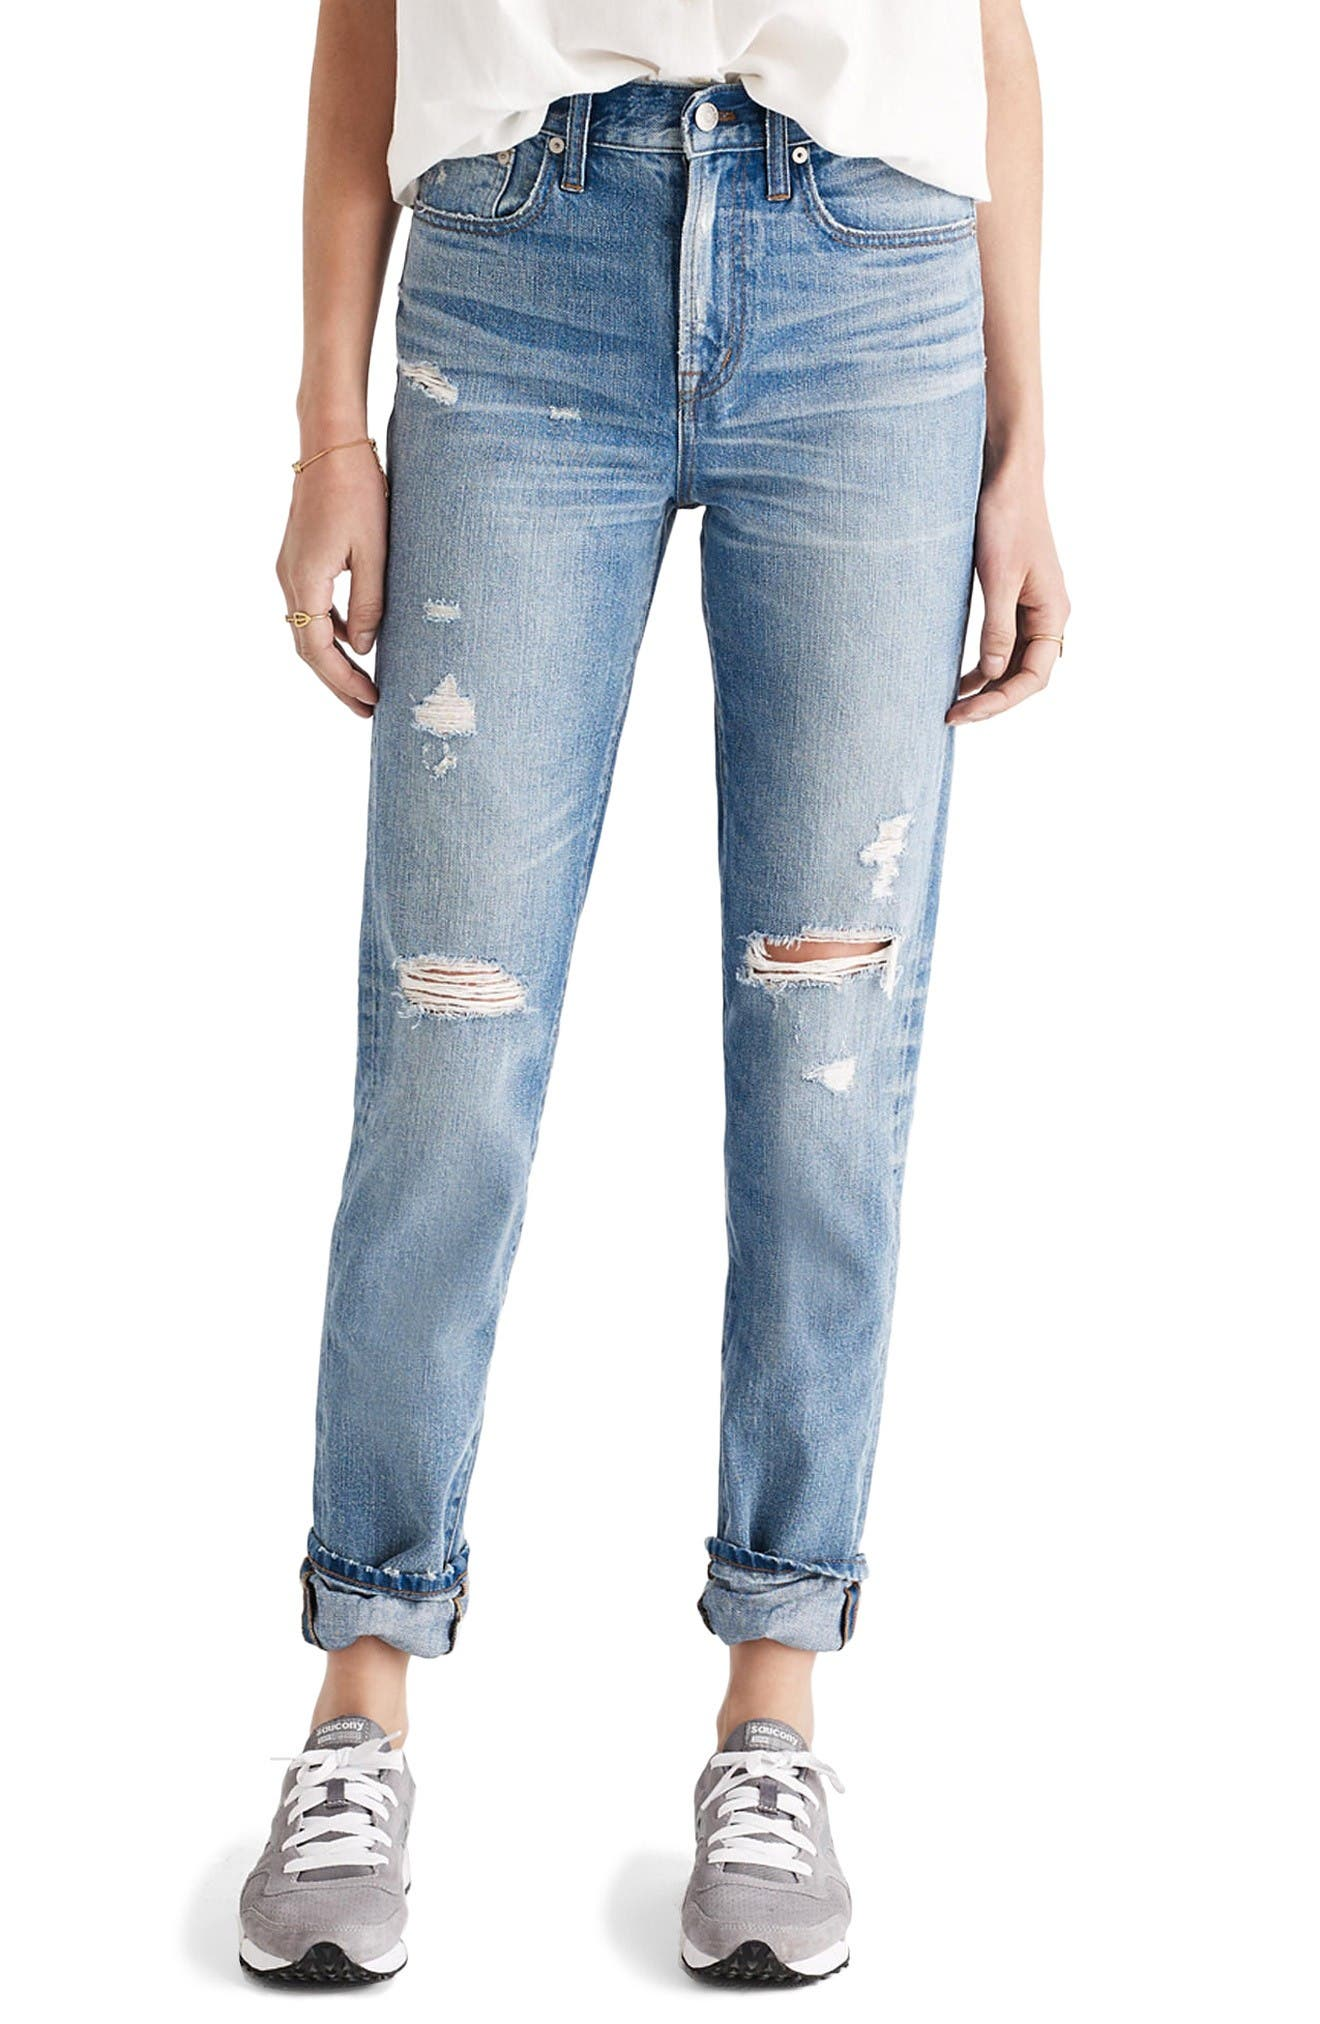 Alternate Image 1 Selected - Madewell Perfect Vintage Ripped High Waist Boyfriend Jeans (Chet)